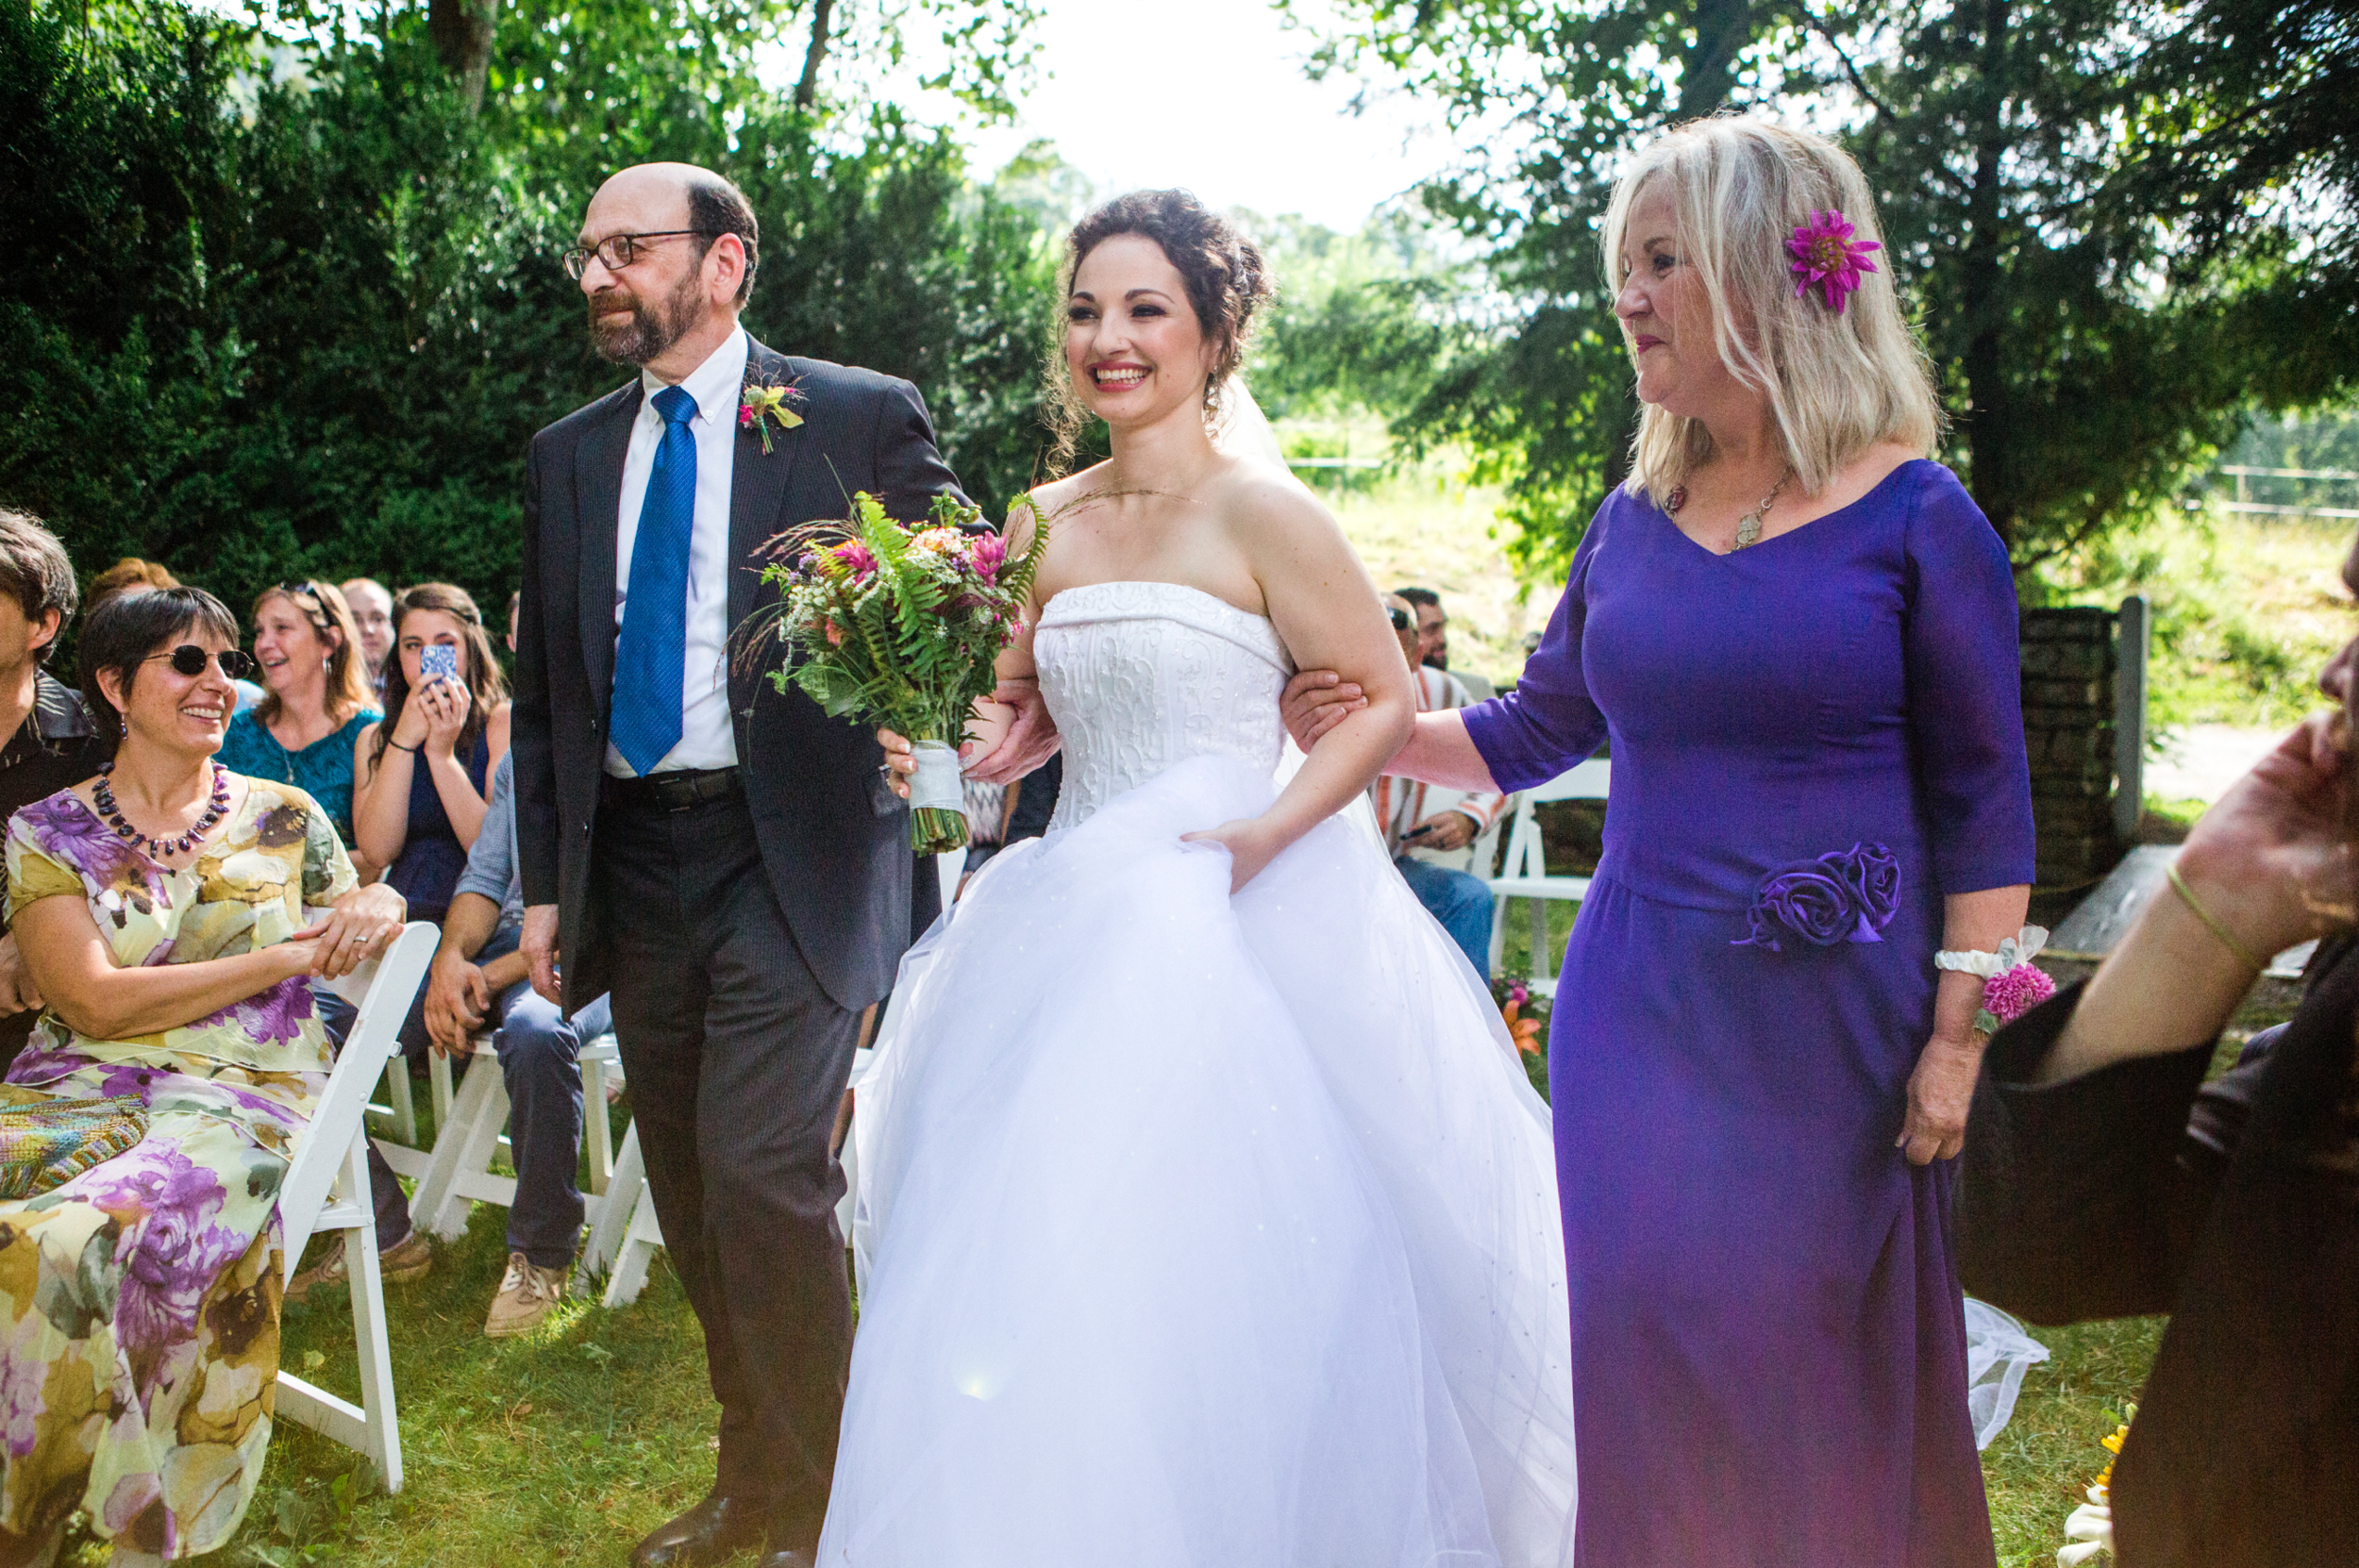 Delighted bride Walking down the aisle with mom and dad